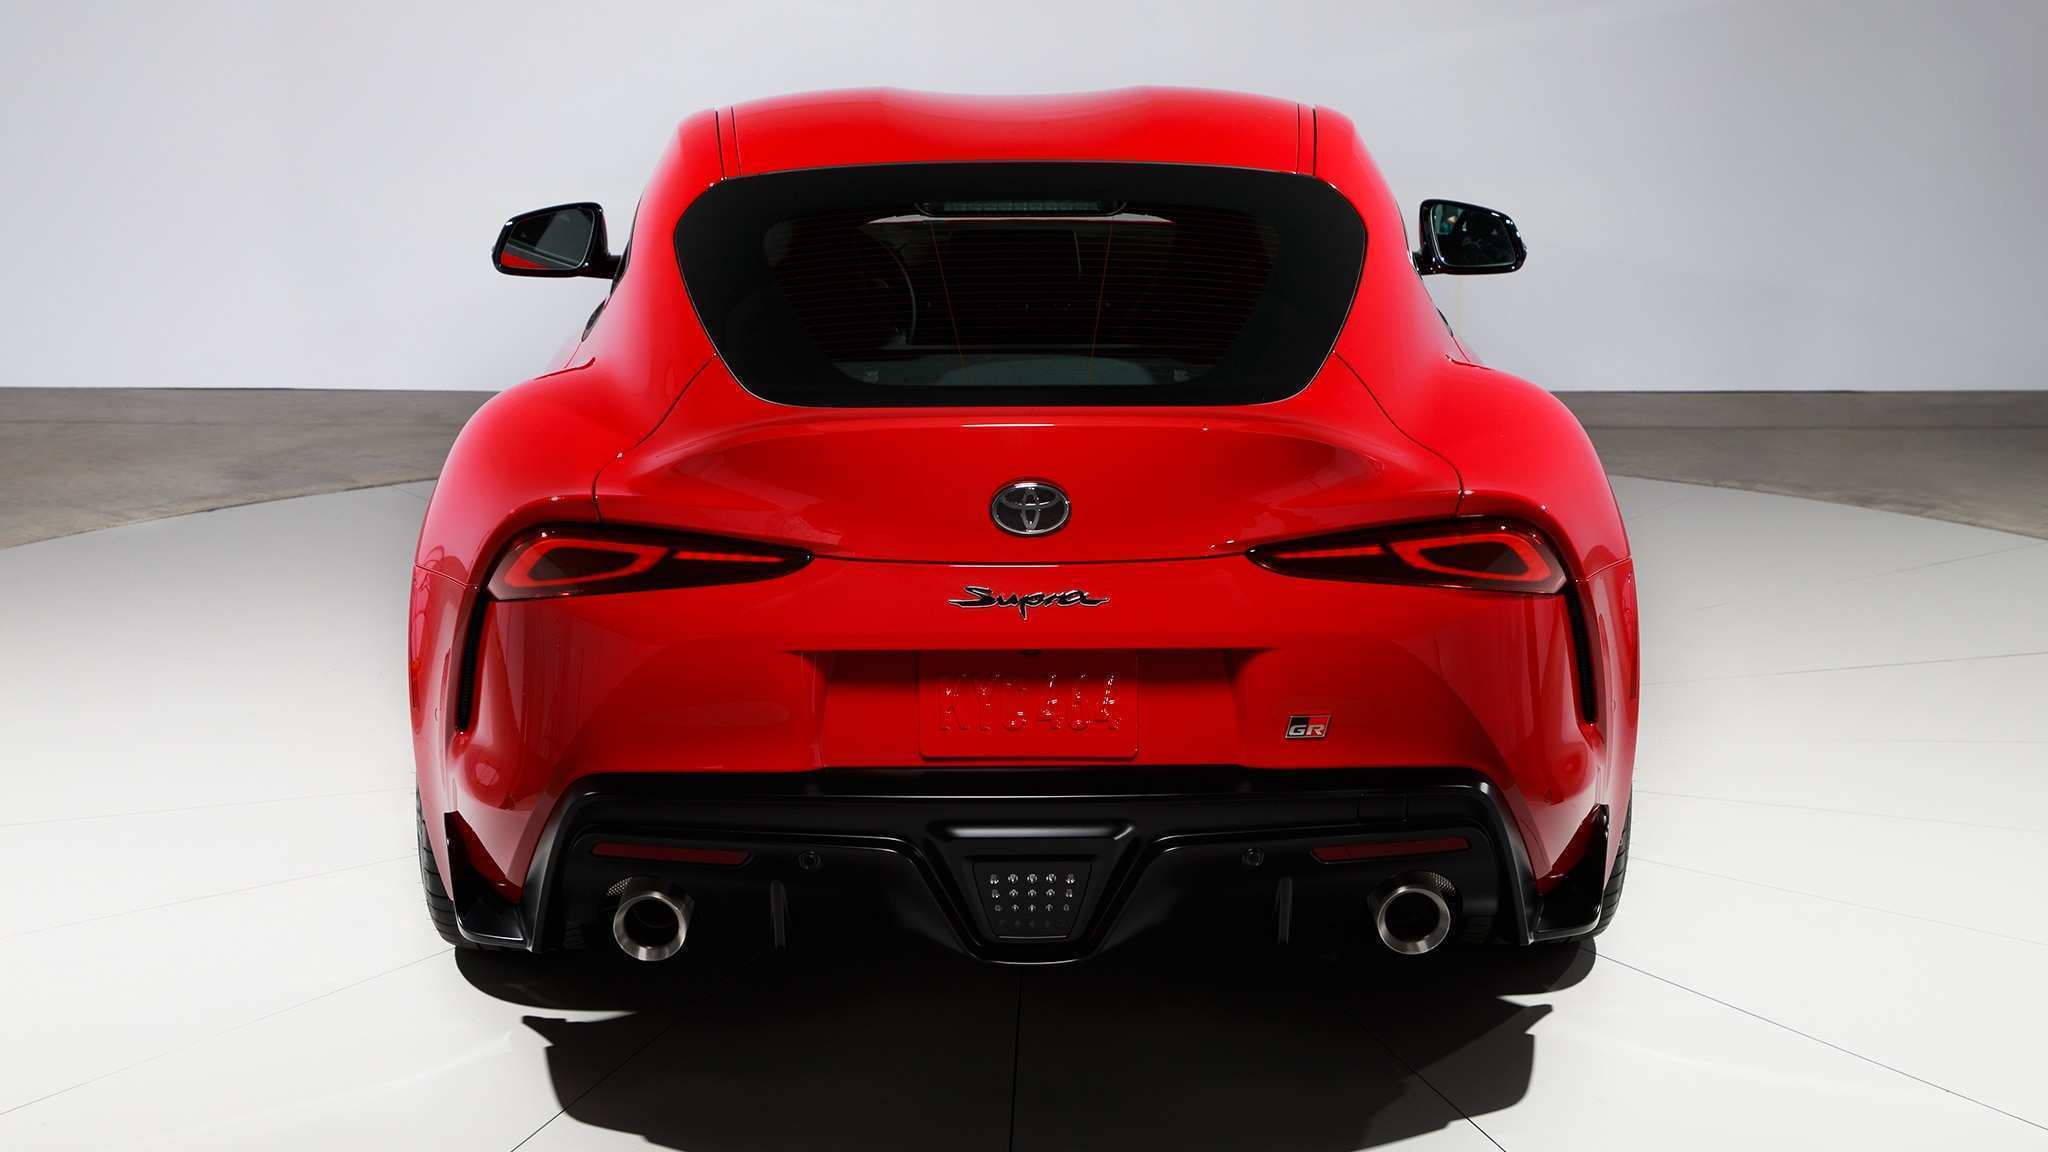 50 Concept of 2020 Toyota Supra Exterior Pricing by 2020 Toyota Supra Exterior